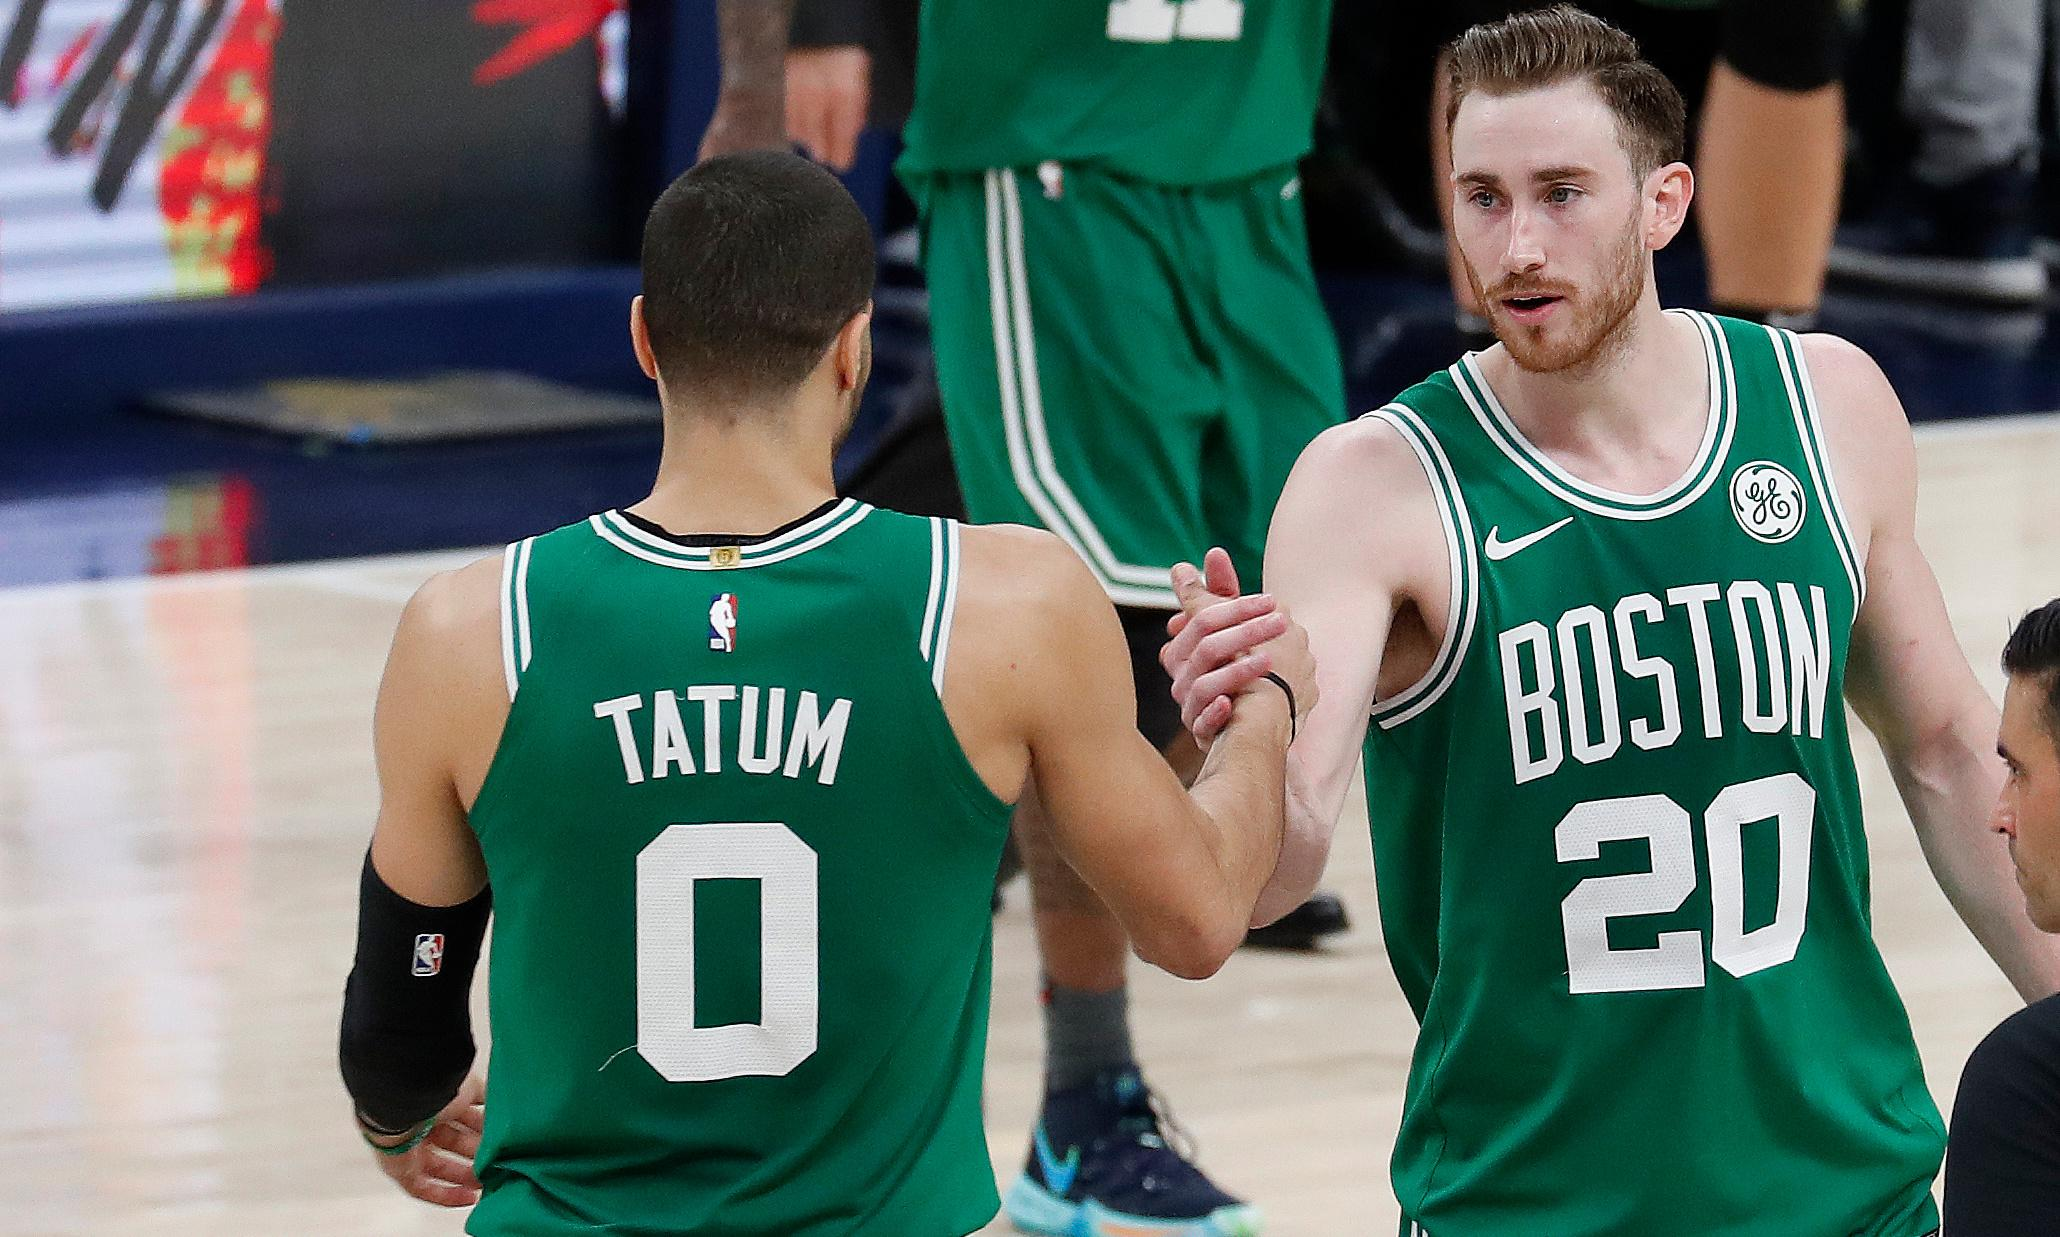 NBA playoffs: Celtics sweep Pacers to breeze into next round